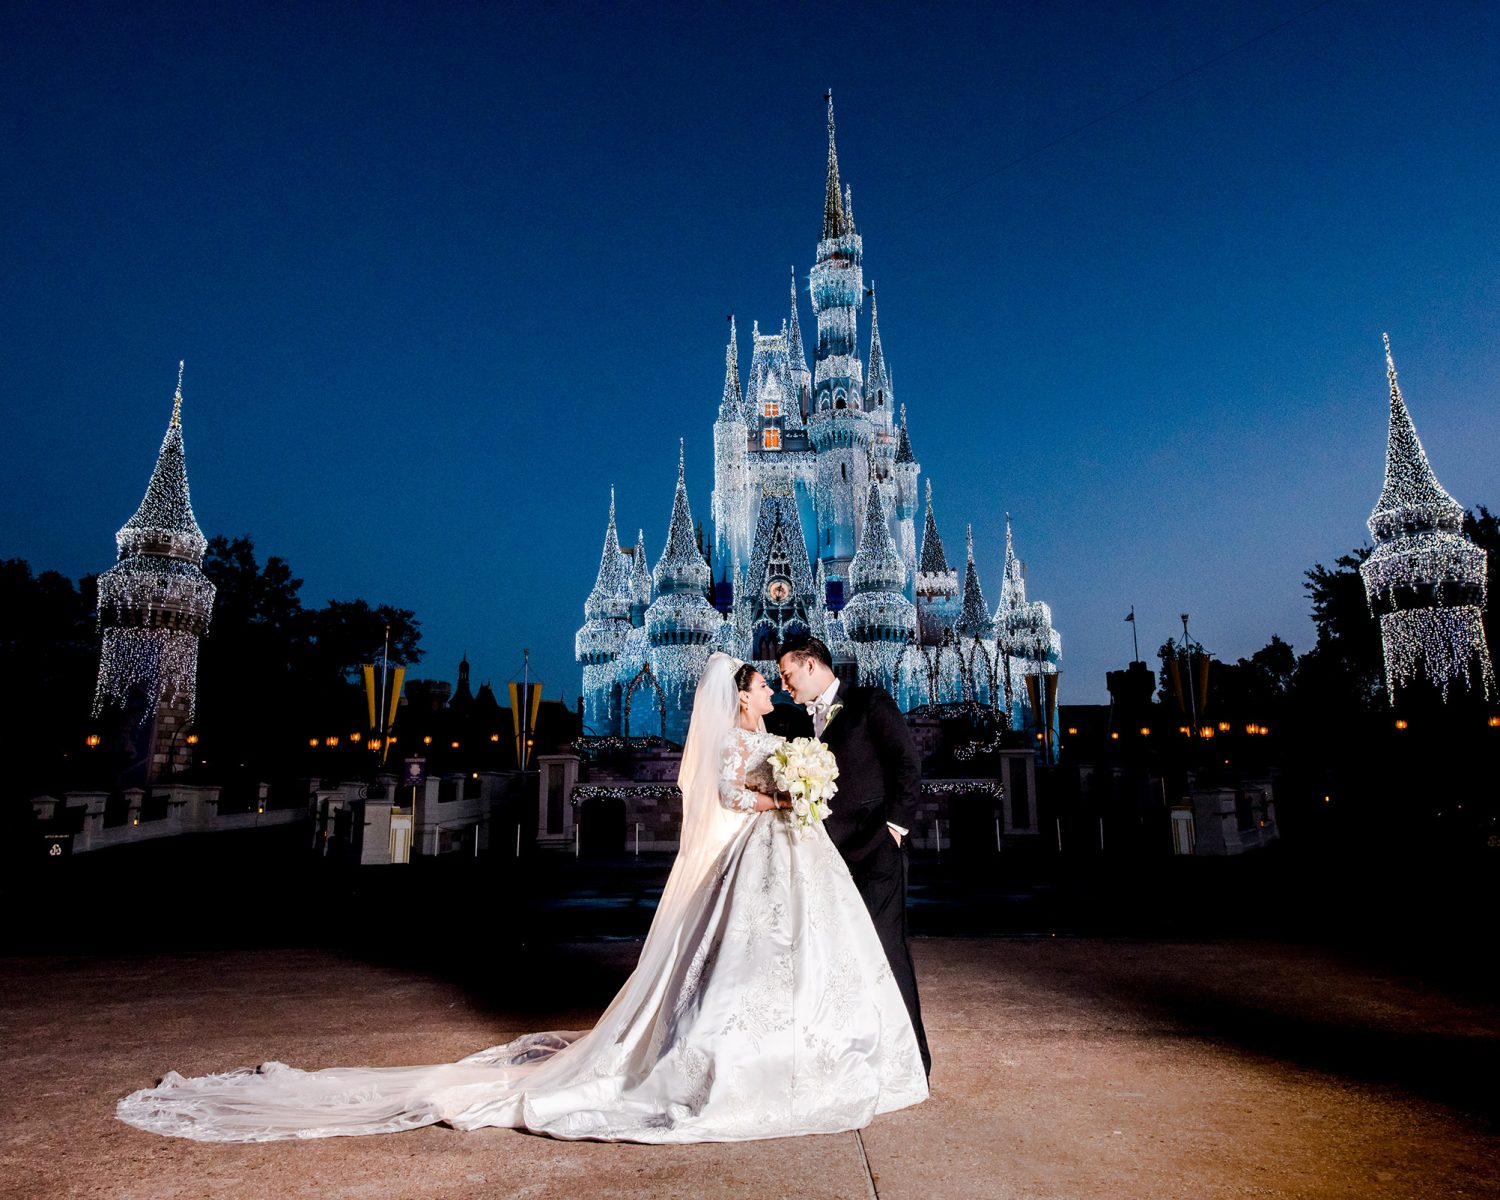 Disney's Fairy Tale Weddings Is Back Meet The New Hosts. Gold Accented Wedding Dresses. Halter Top Wedding Dresses Plus Size. Summer Wedding Dresses With Color. Puffy Wedding Dresses Online. Informal Wedding Dresses Sleeves. Reem Acra Blush Wedding Dress Price. Champagne Wedding Dresses Ebay. Ice Pink Wedding Dresses